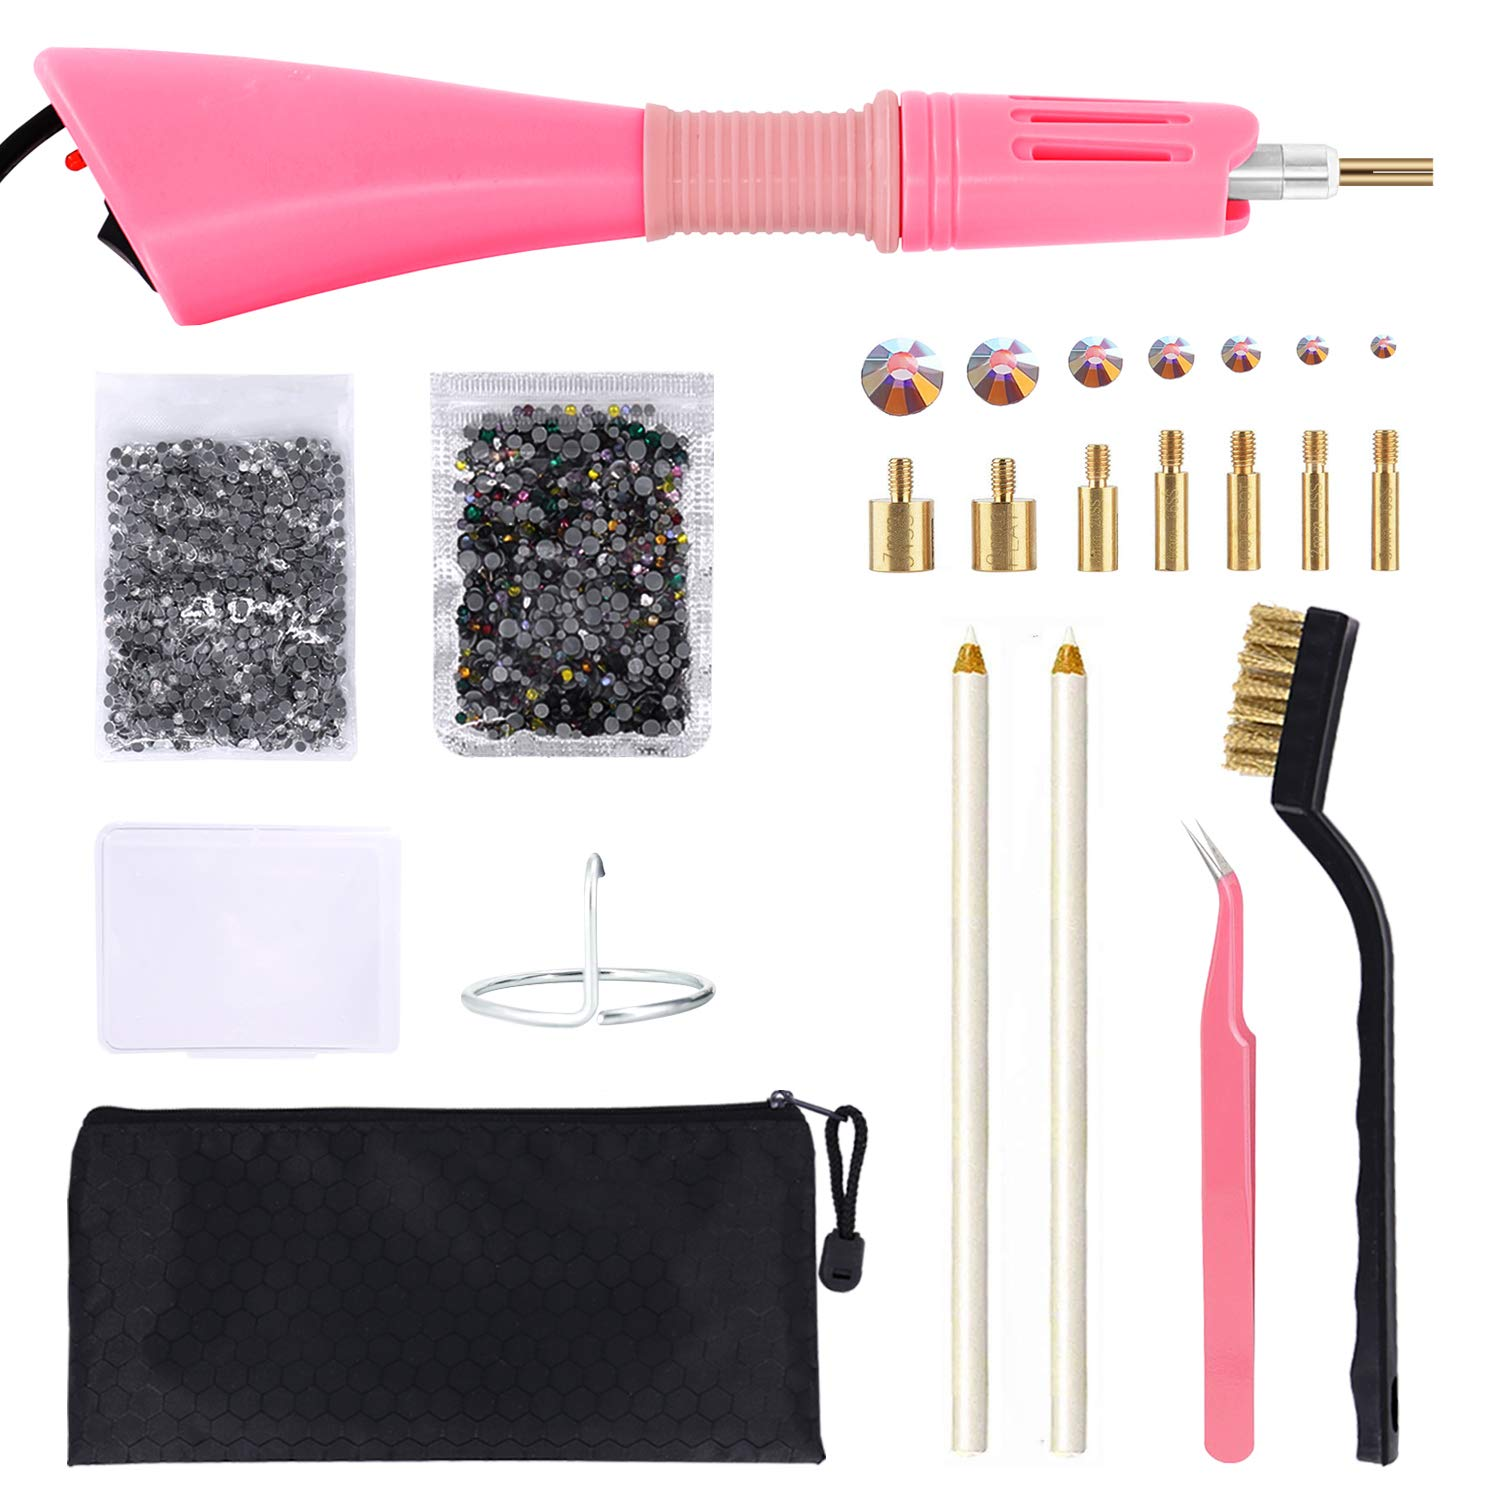 Hotfix Applicator, GLTECK DIY Hot Fix Rhinestone Applicator Wand Setter Tool Kit with 7 Different Sizes Tips-2 Rhinestone Pencil Pickers -Tweezers & Brush Cleaning kit and 2 Pack Hot-Fix Crystal Rhin by GGLTECK